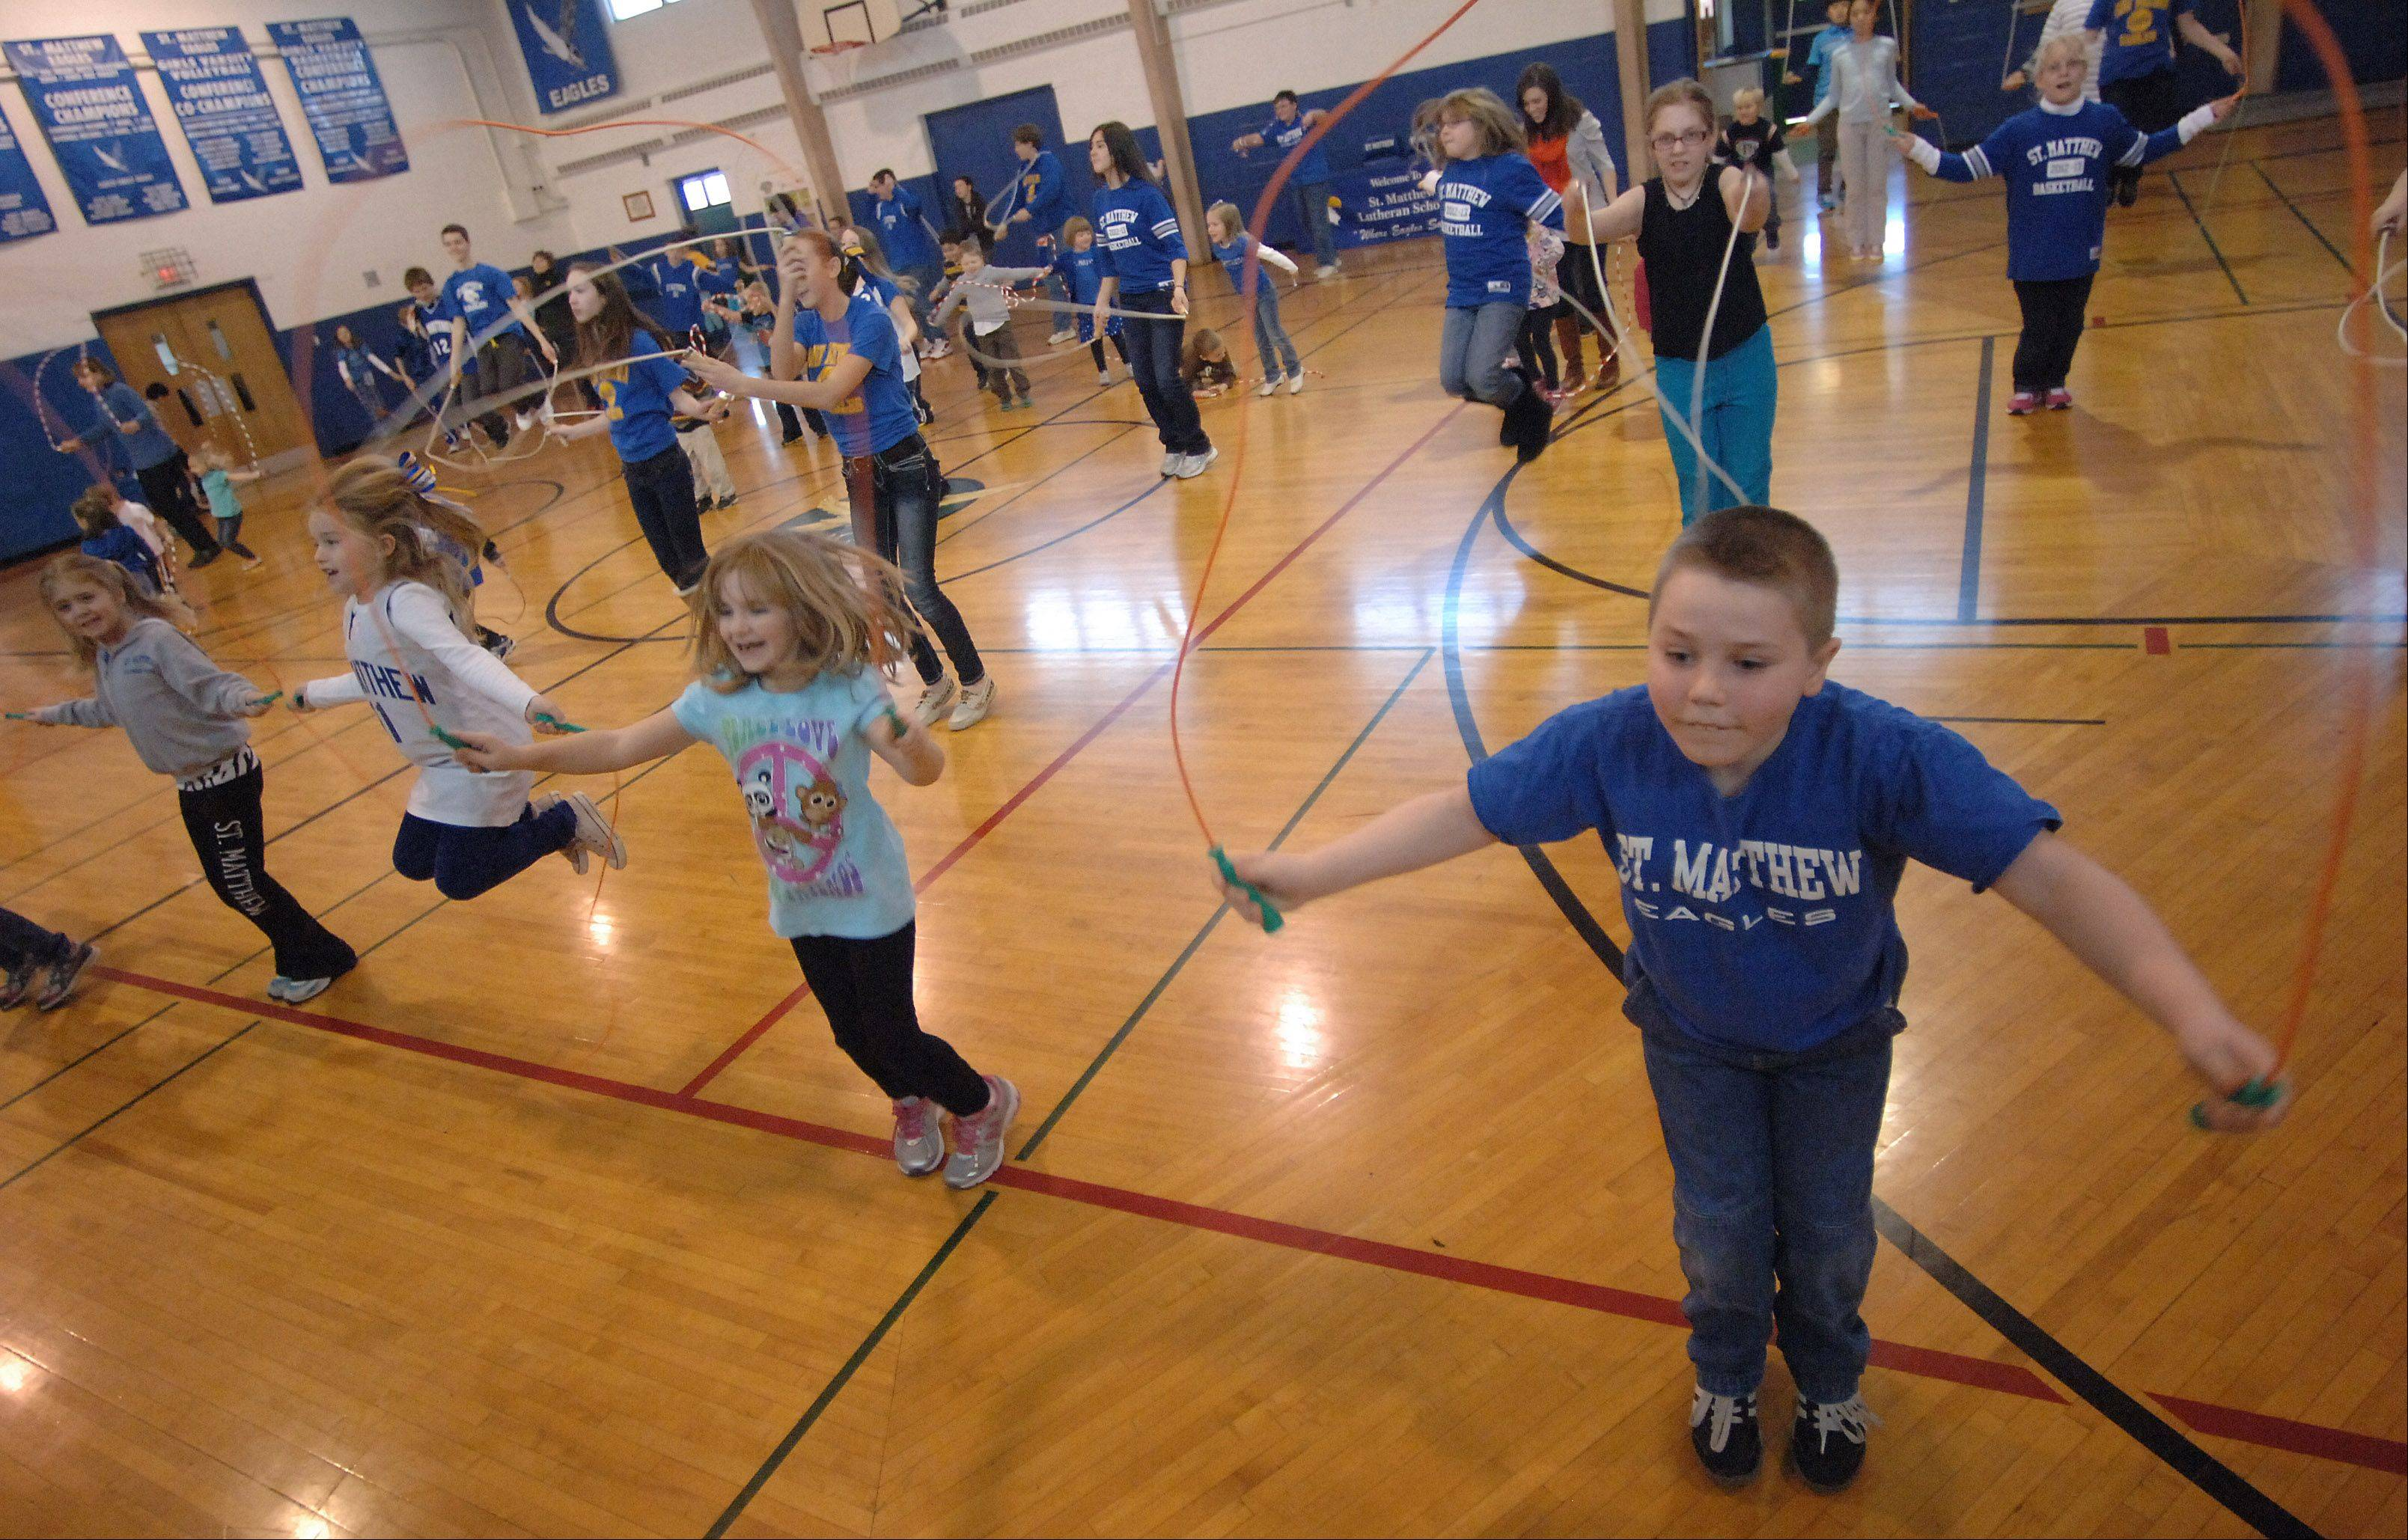 For Lutheran Schools Week, St. Matthew School in Hawthorn Woods held a Jump Rope for Heart fundraiser event. Ninety students in preschool through eighth grade participated in the event to raise money for the American Heart Association.